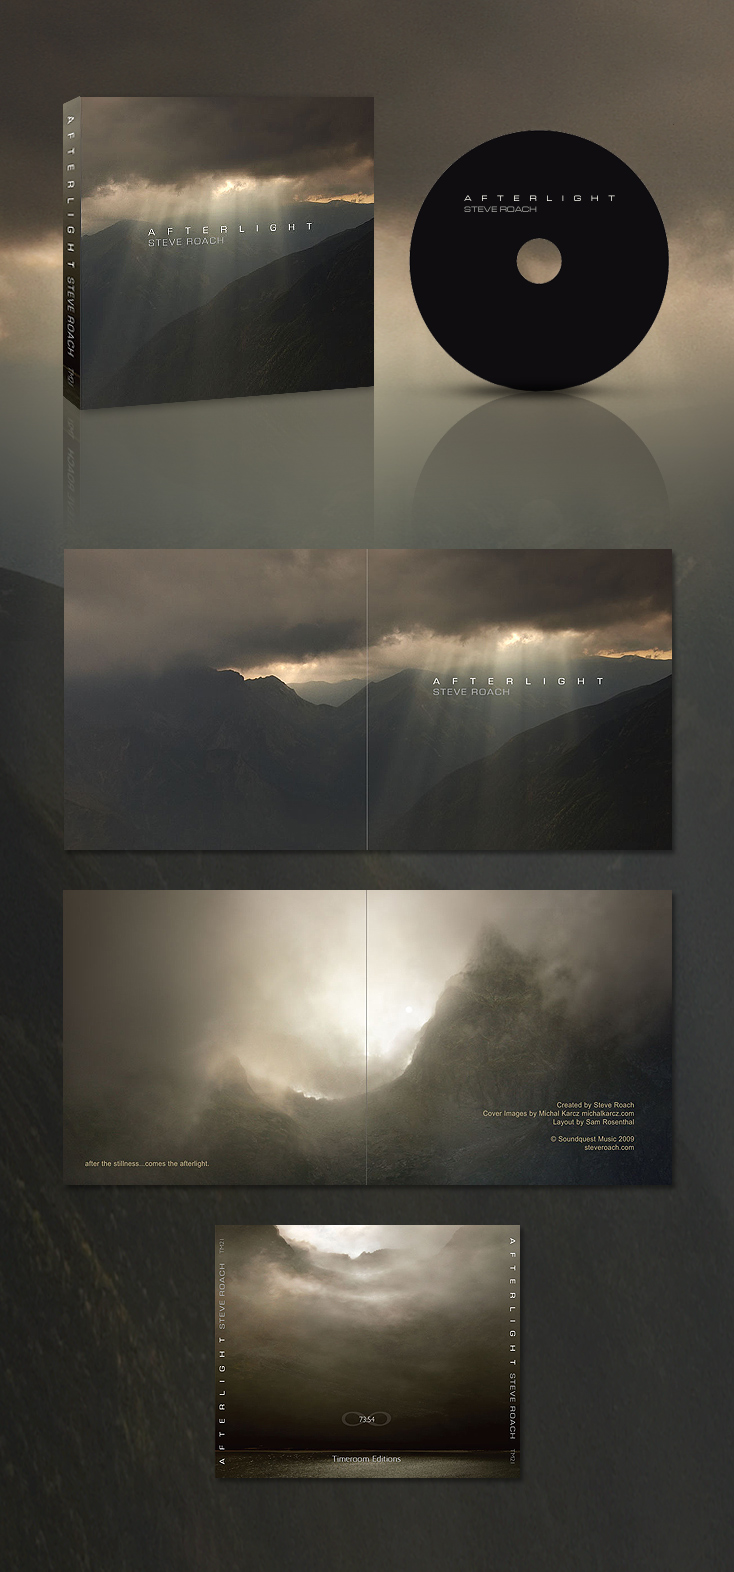 STEVE ROACH Afterlight cover by Karezoid